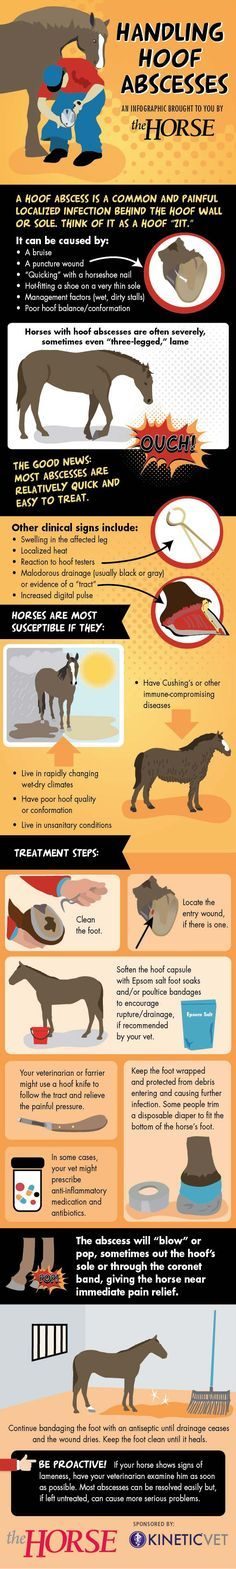 [INFOGRAPHIC] Handling Hoof Abscesses - TheHorse.com |